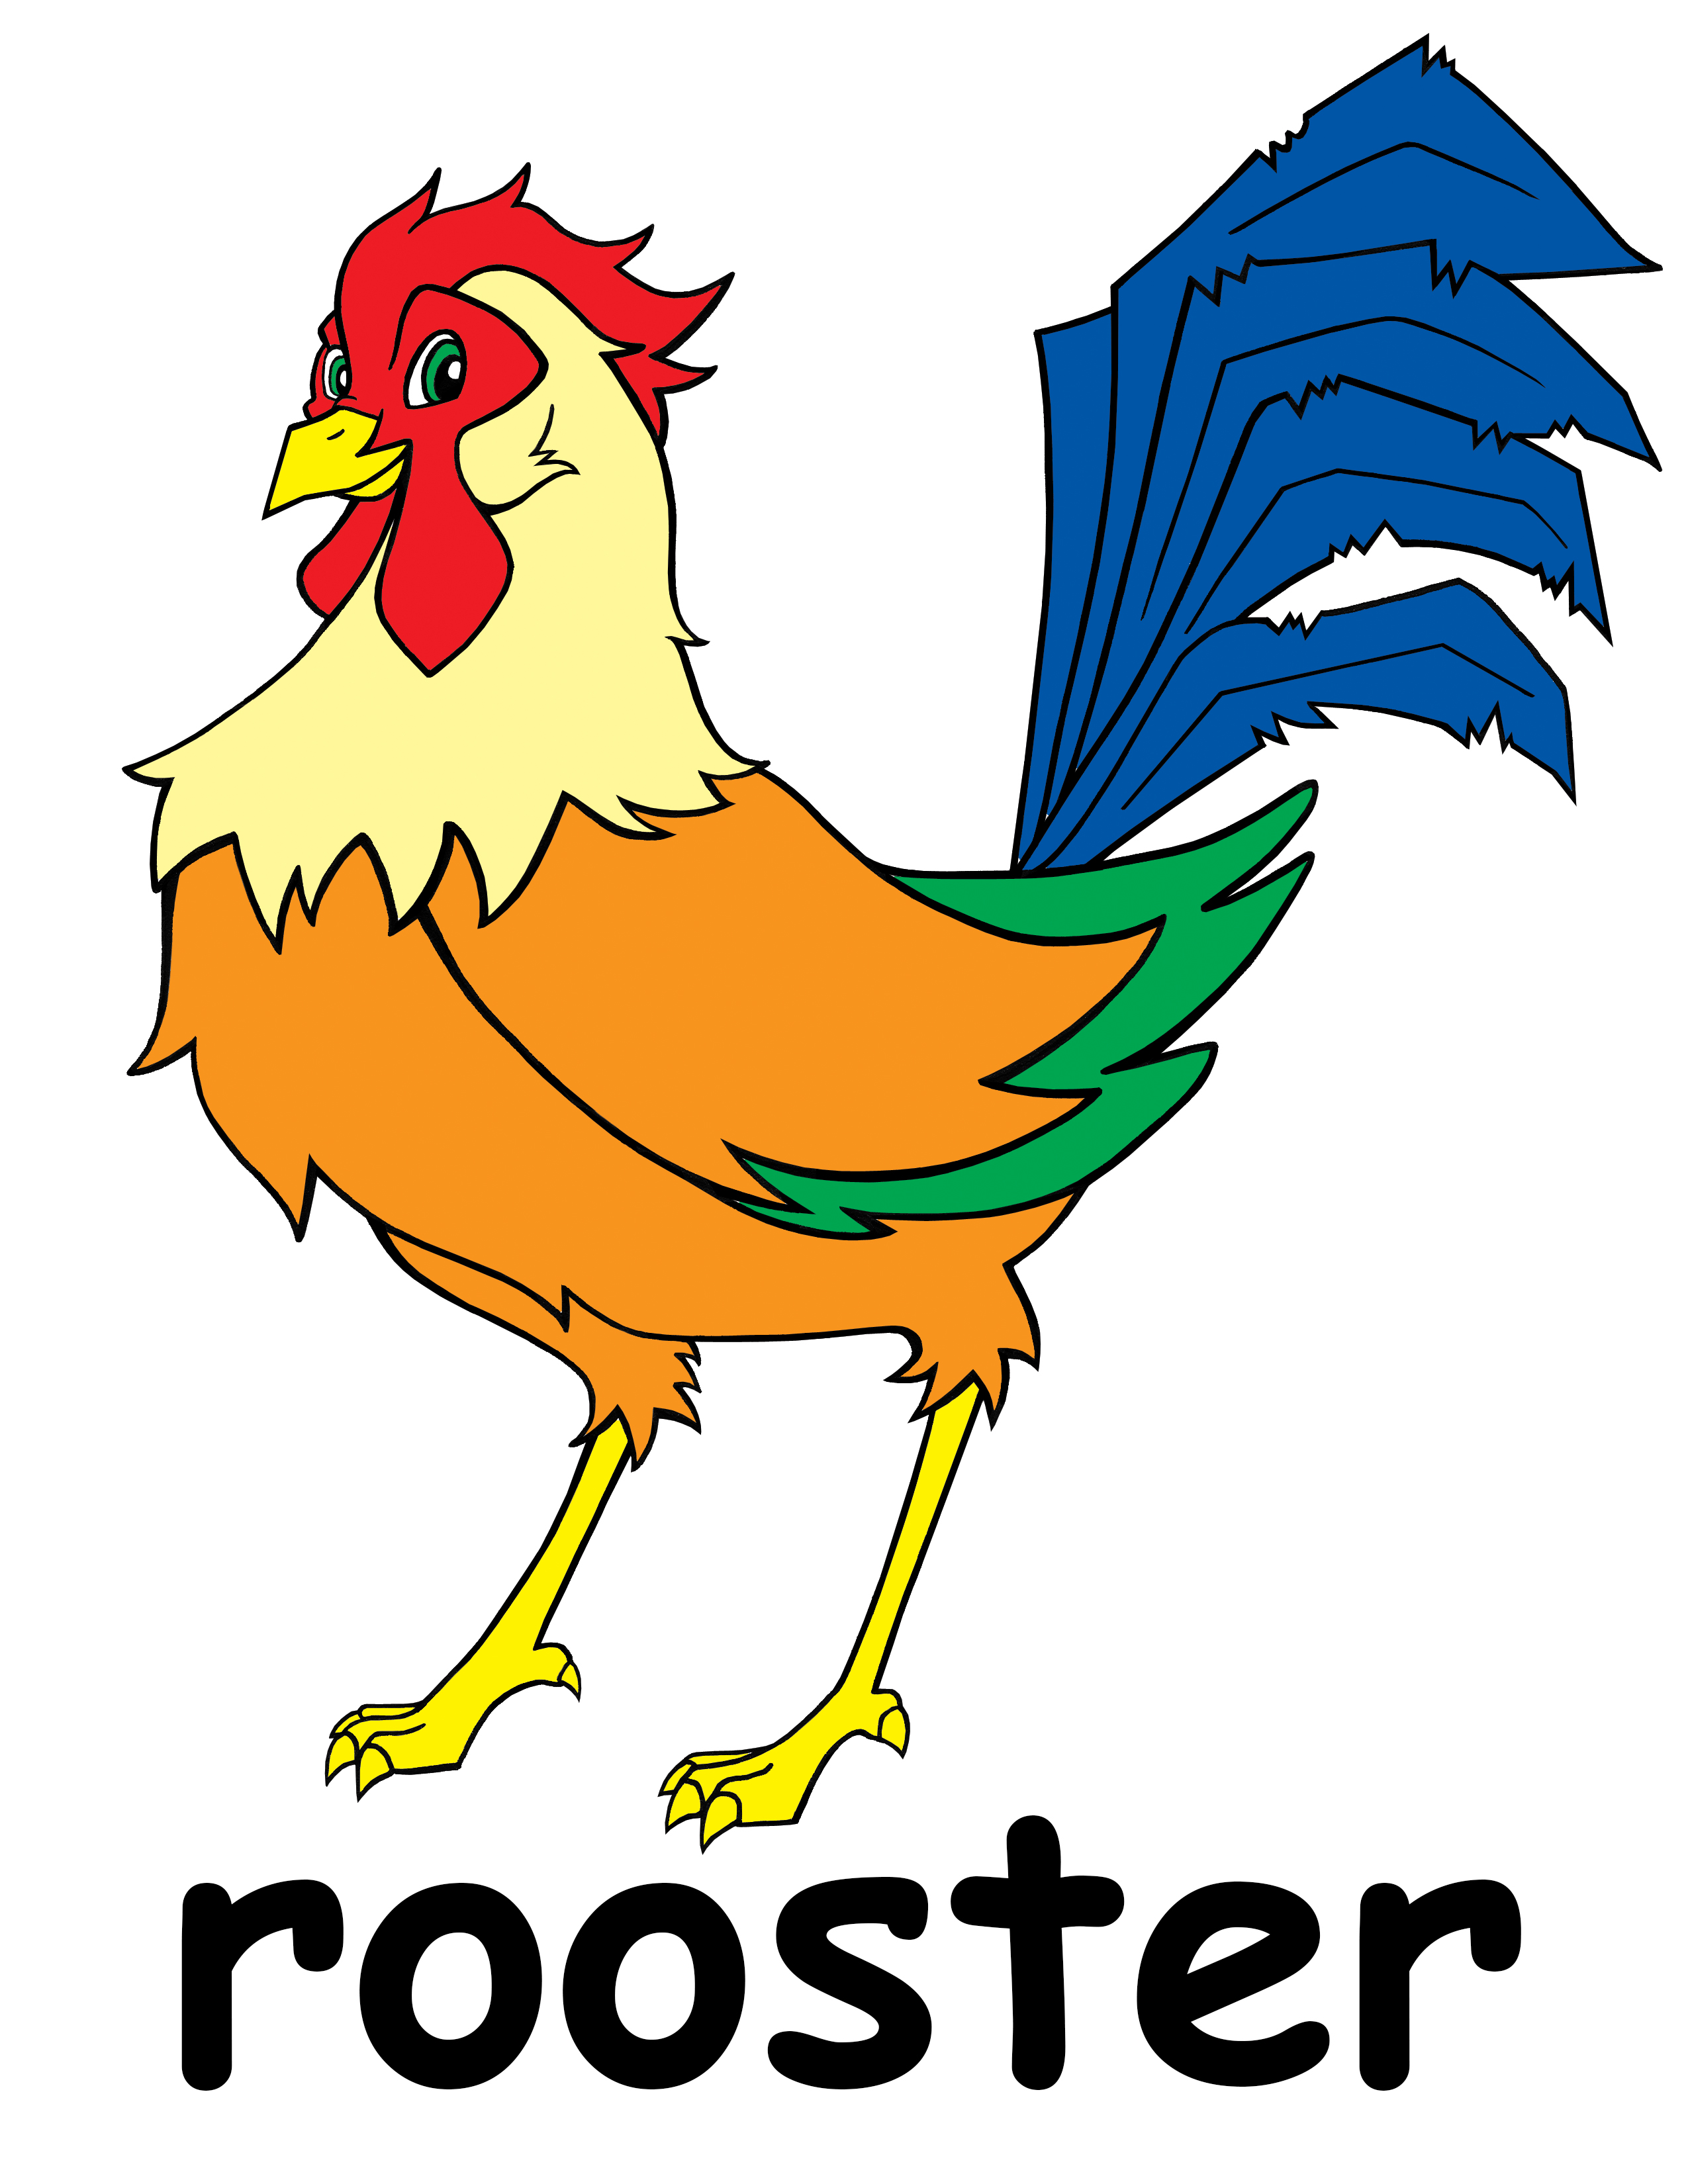 rooster clip art images - photo #24